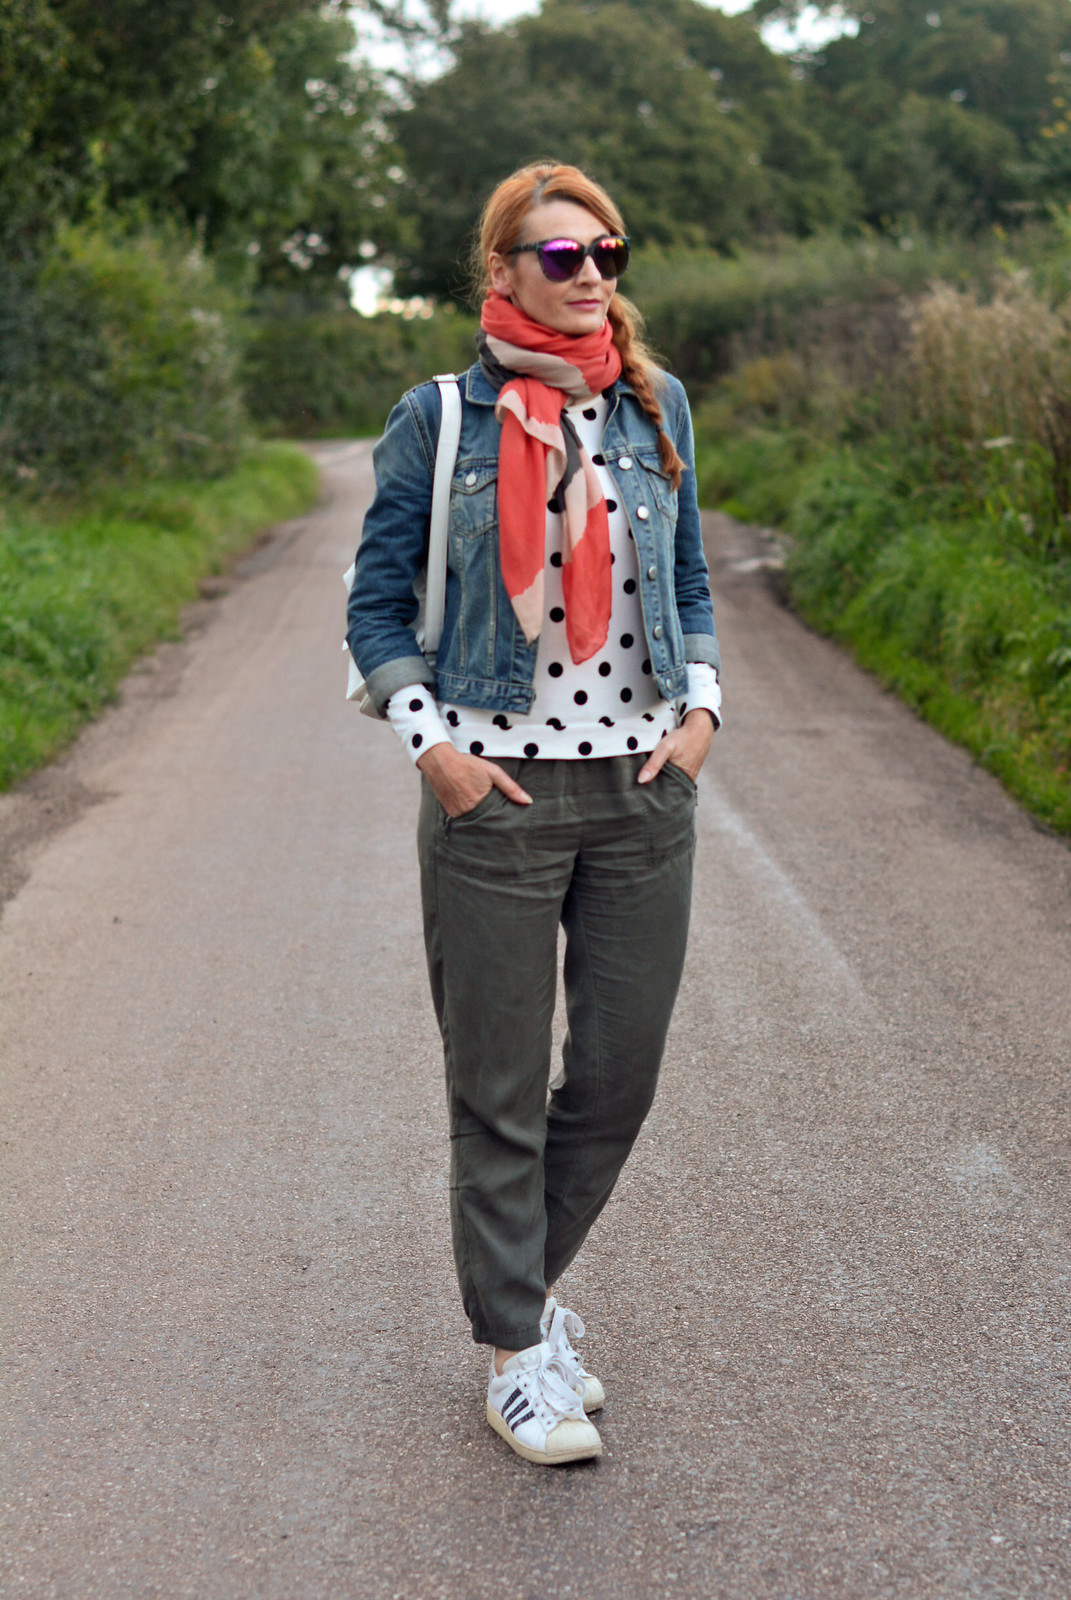 6 Great Autumn (Fall) Outfit Ideas, Over 40 Style